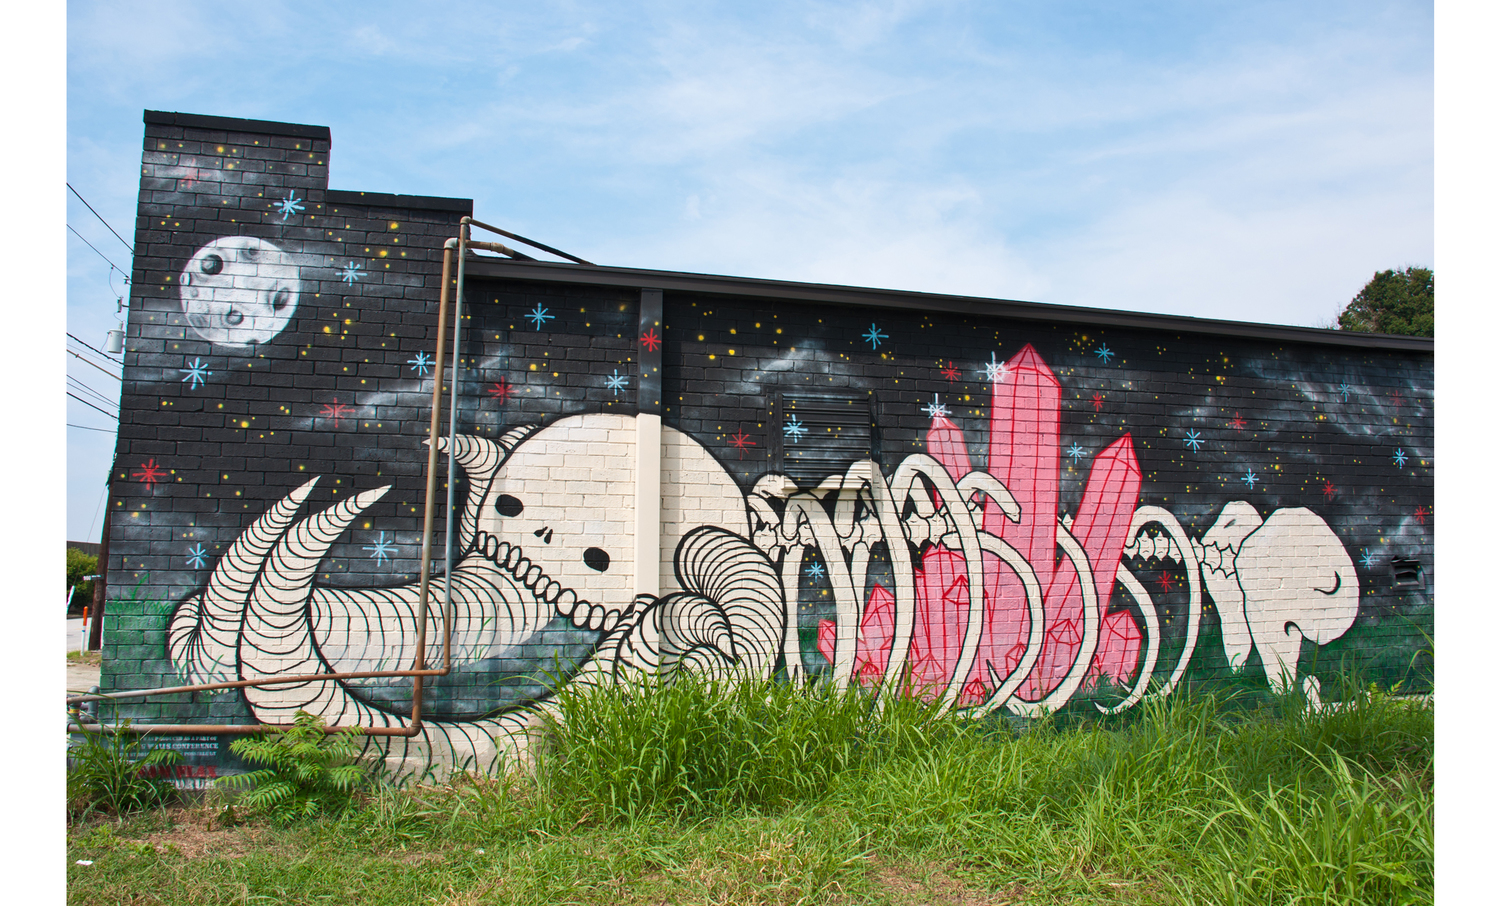 Improving places through street murals in Atlanta